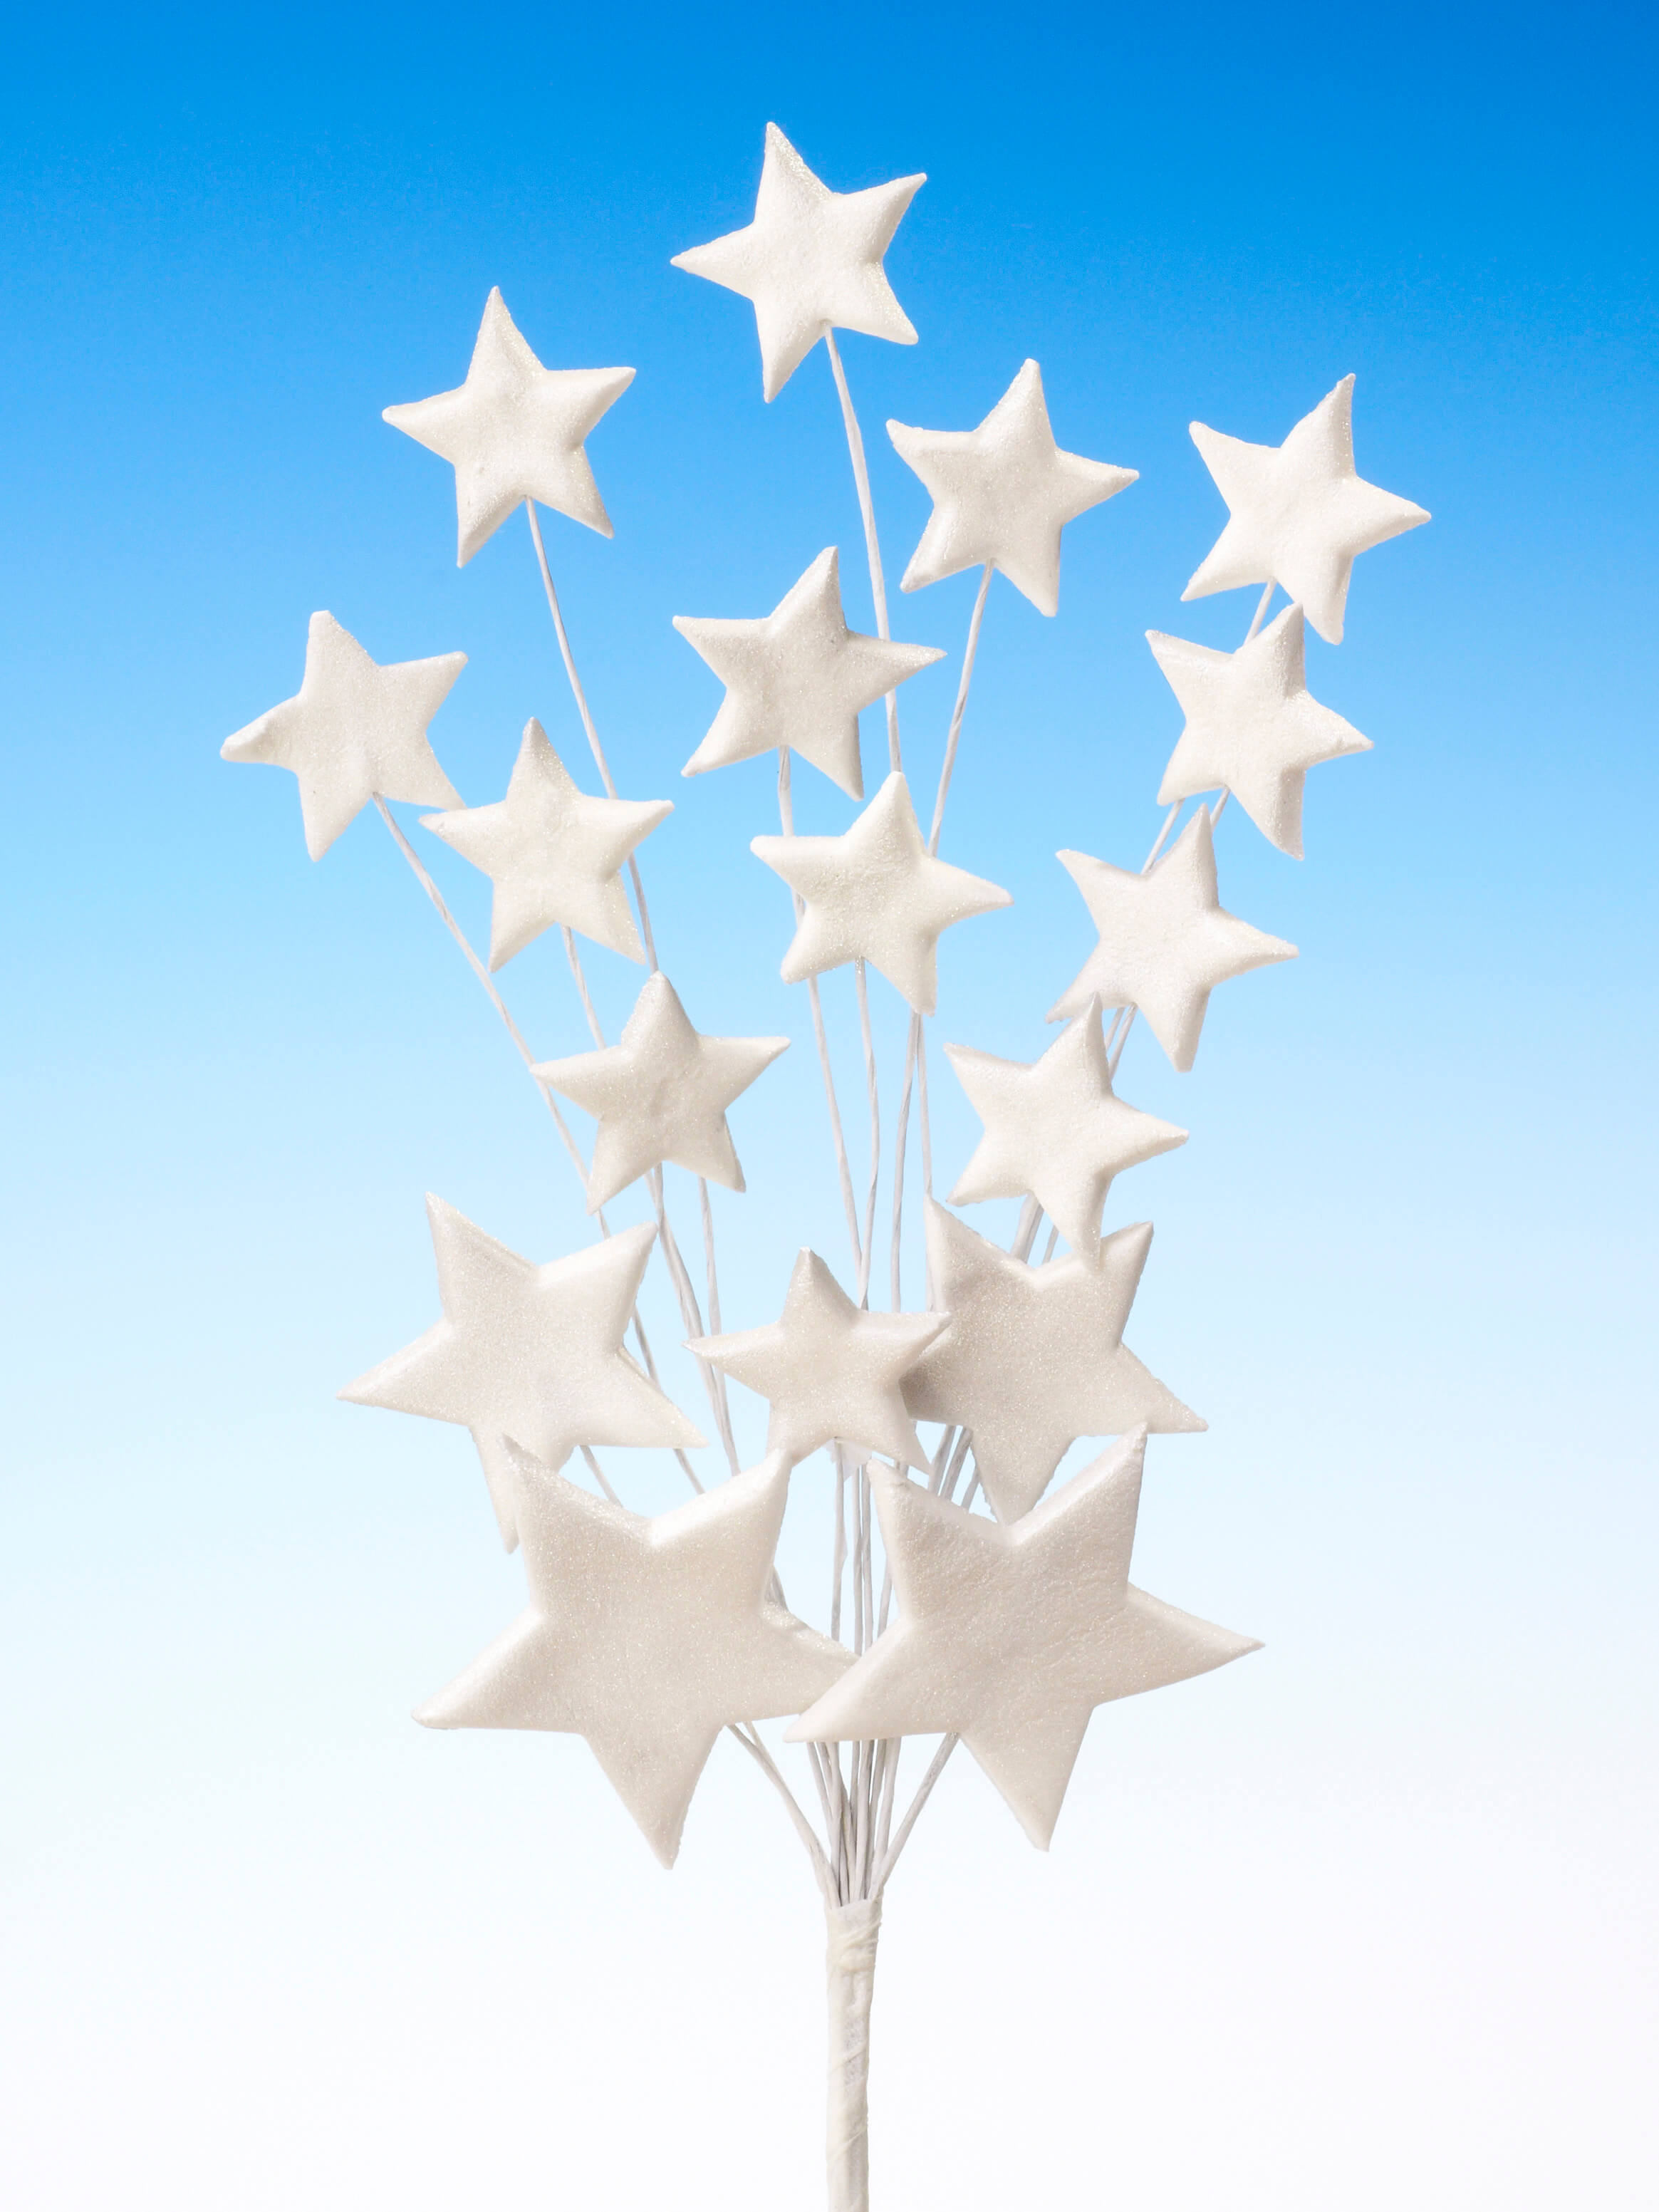 Silver star spray icing cake decoration - Tamworth, West Midlands